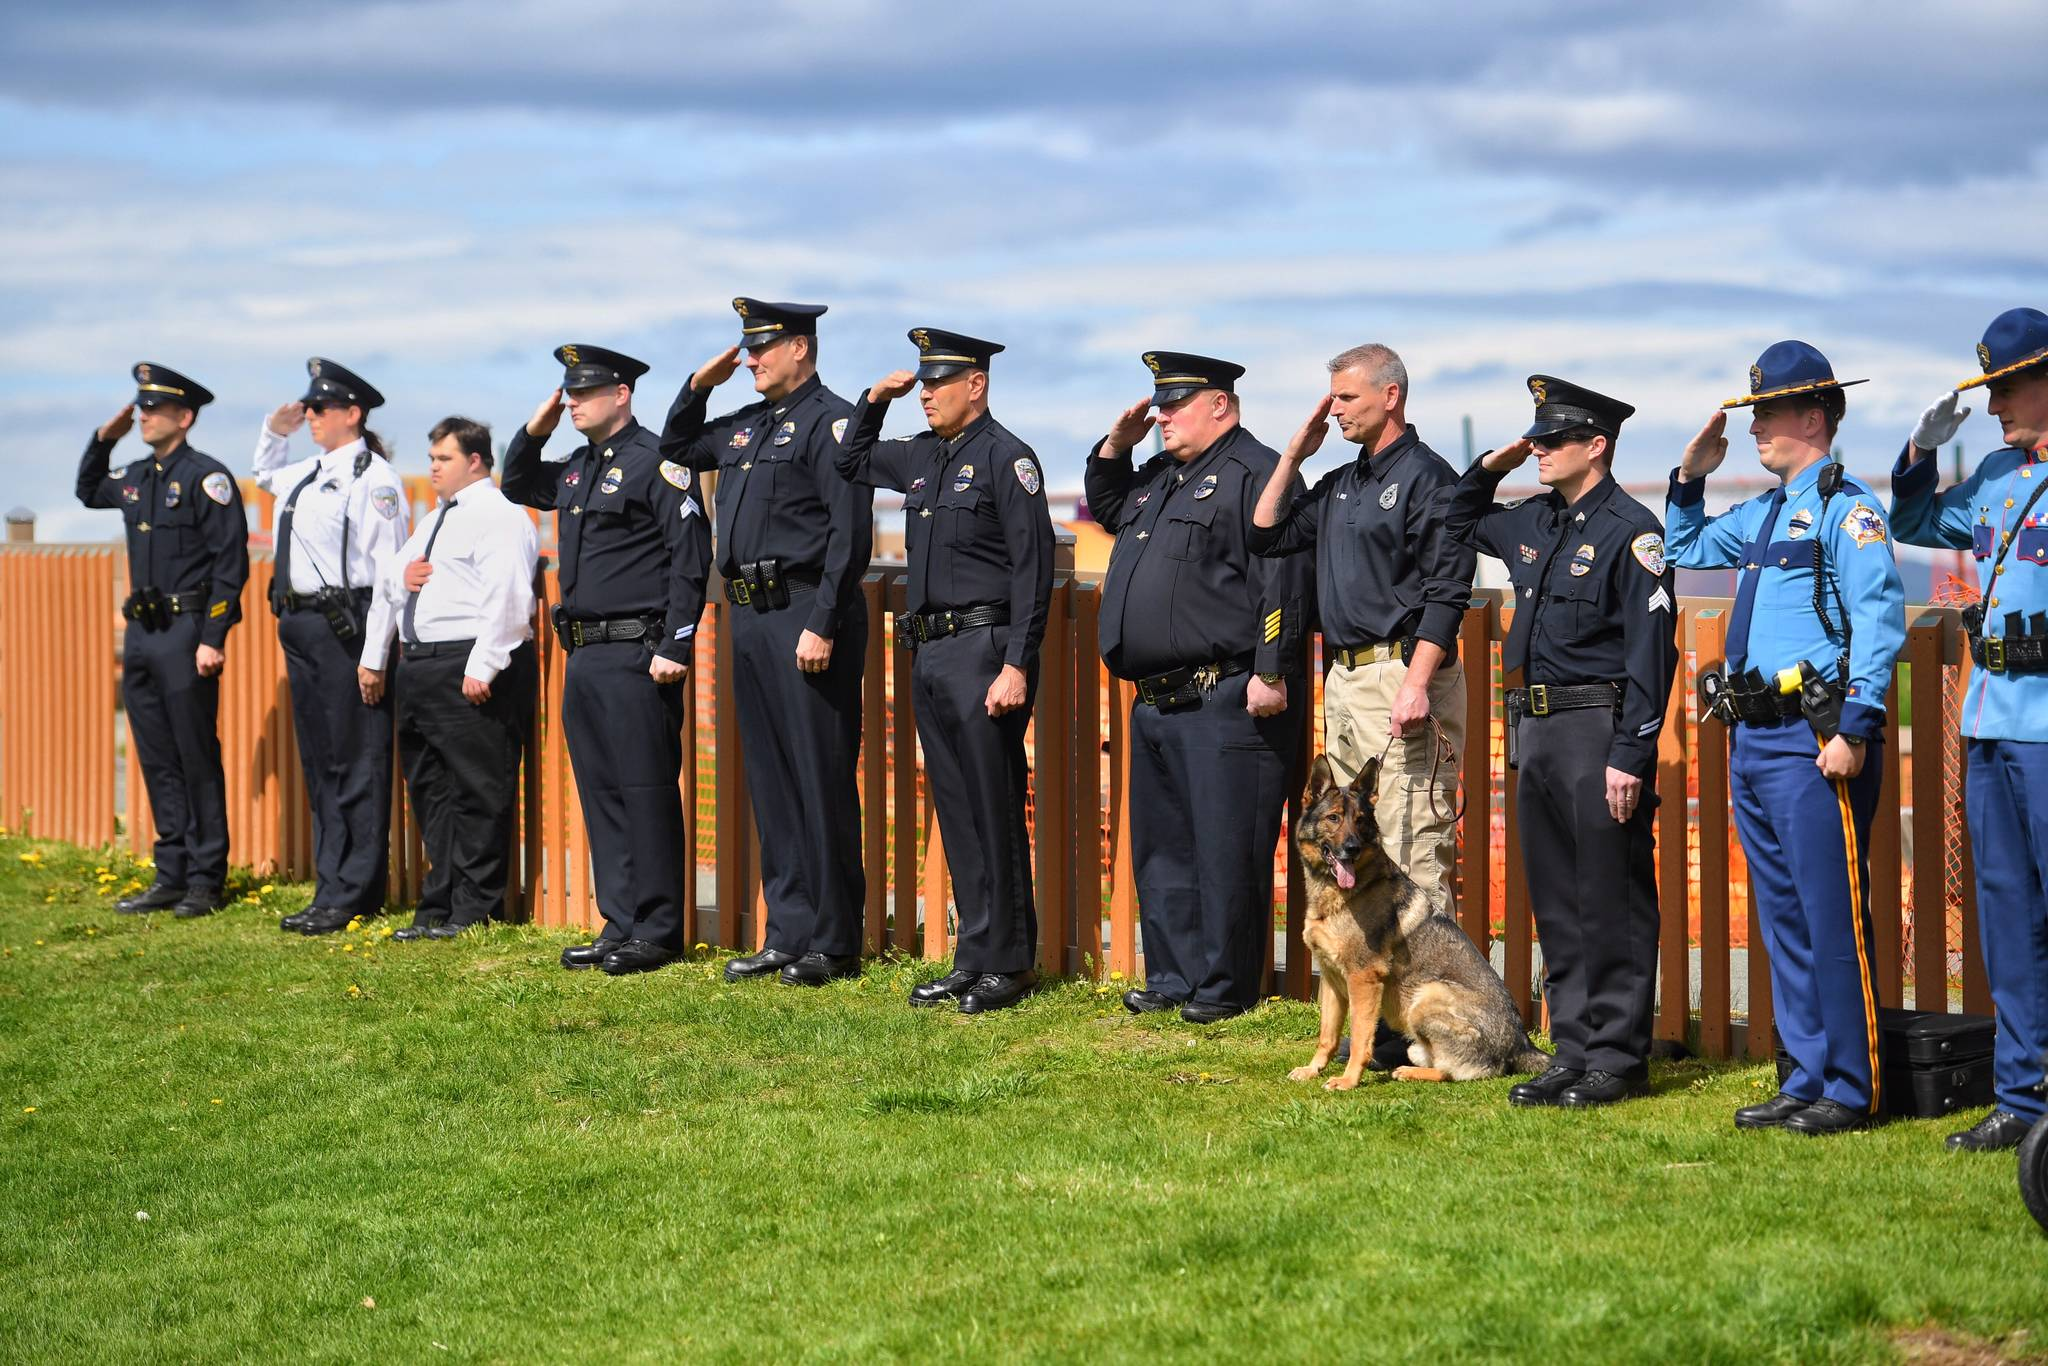 Juneau Police and Alaska State Troopers salute during a police memorial ceremony at Twin Lakes on Saturday, May 18, 2019. (Michael Penn | Juneau Empire)